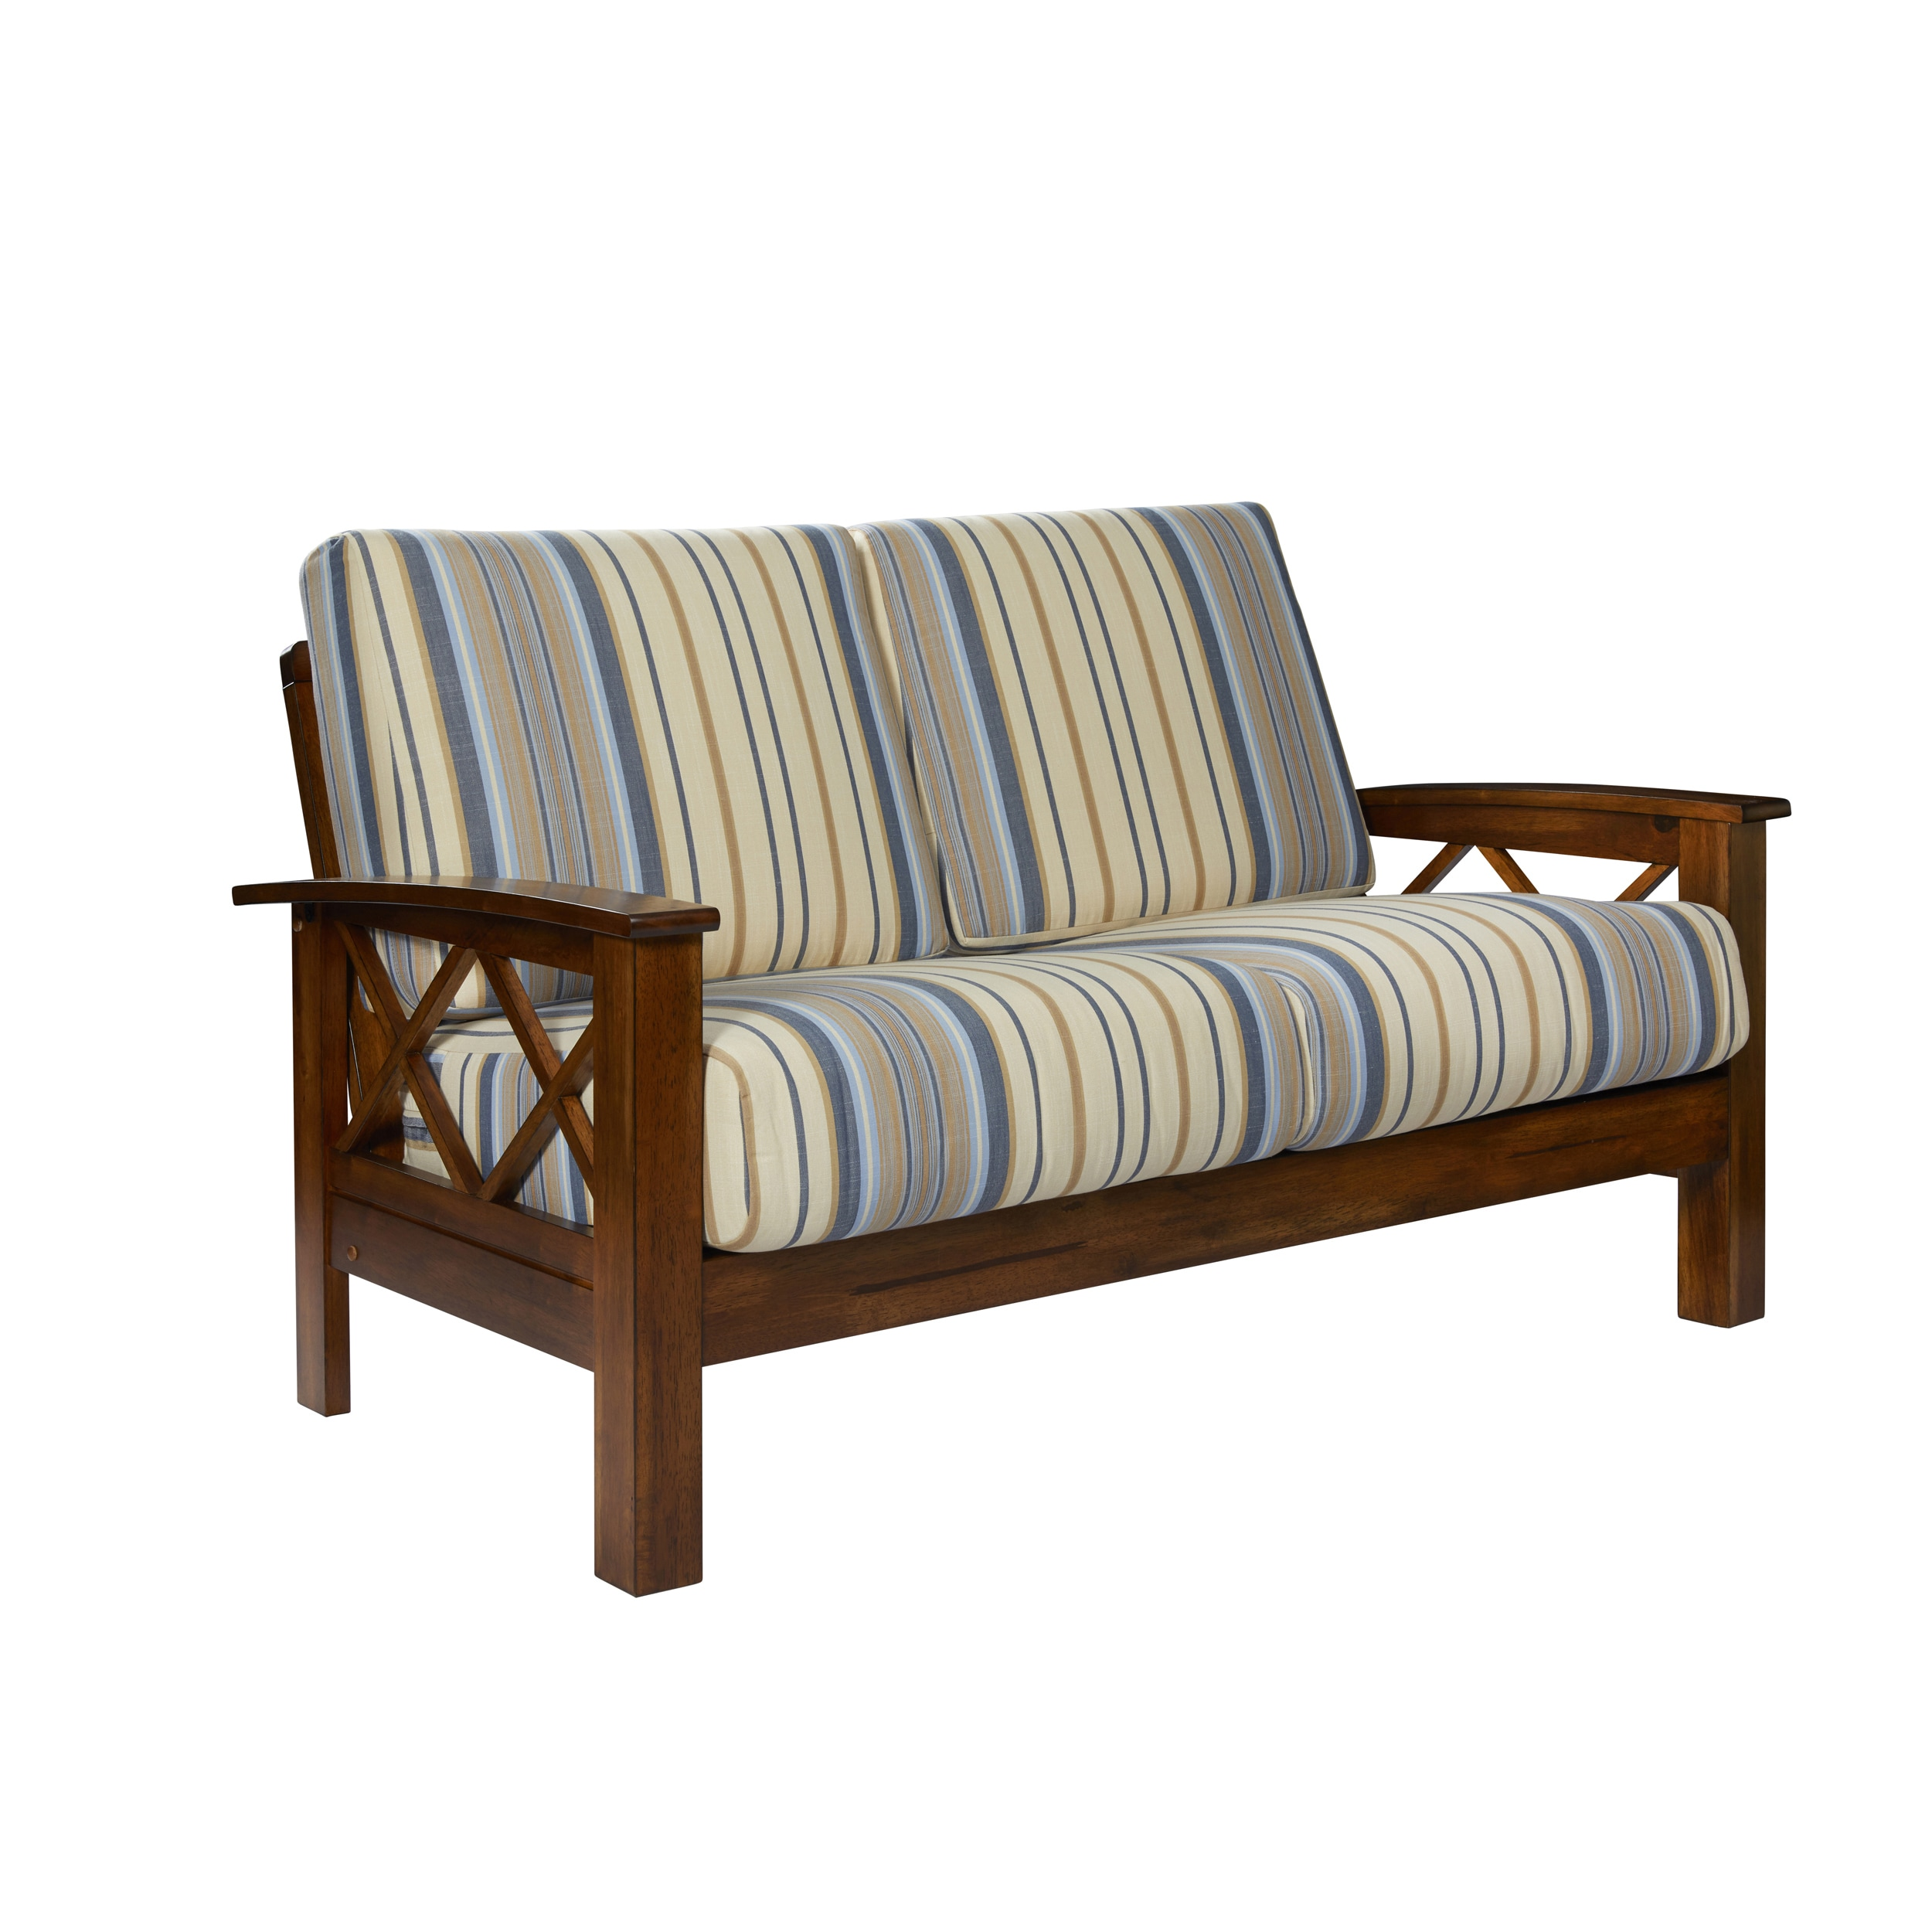 used loveseat second with love sofas tan seat wood hand frame off coupon